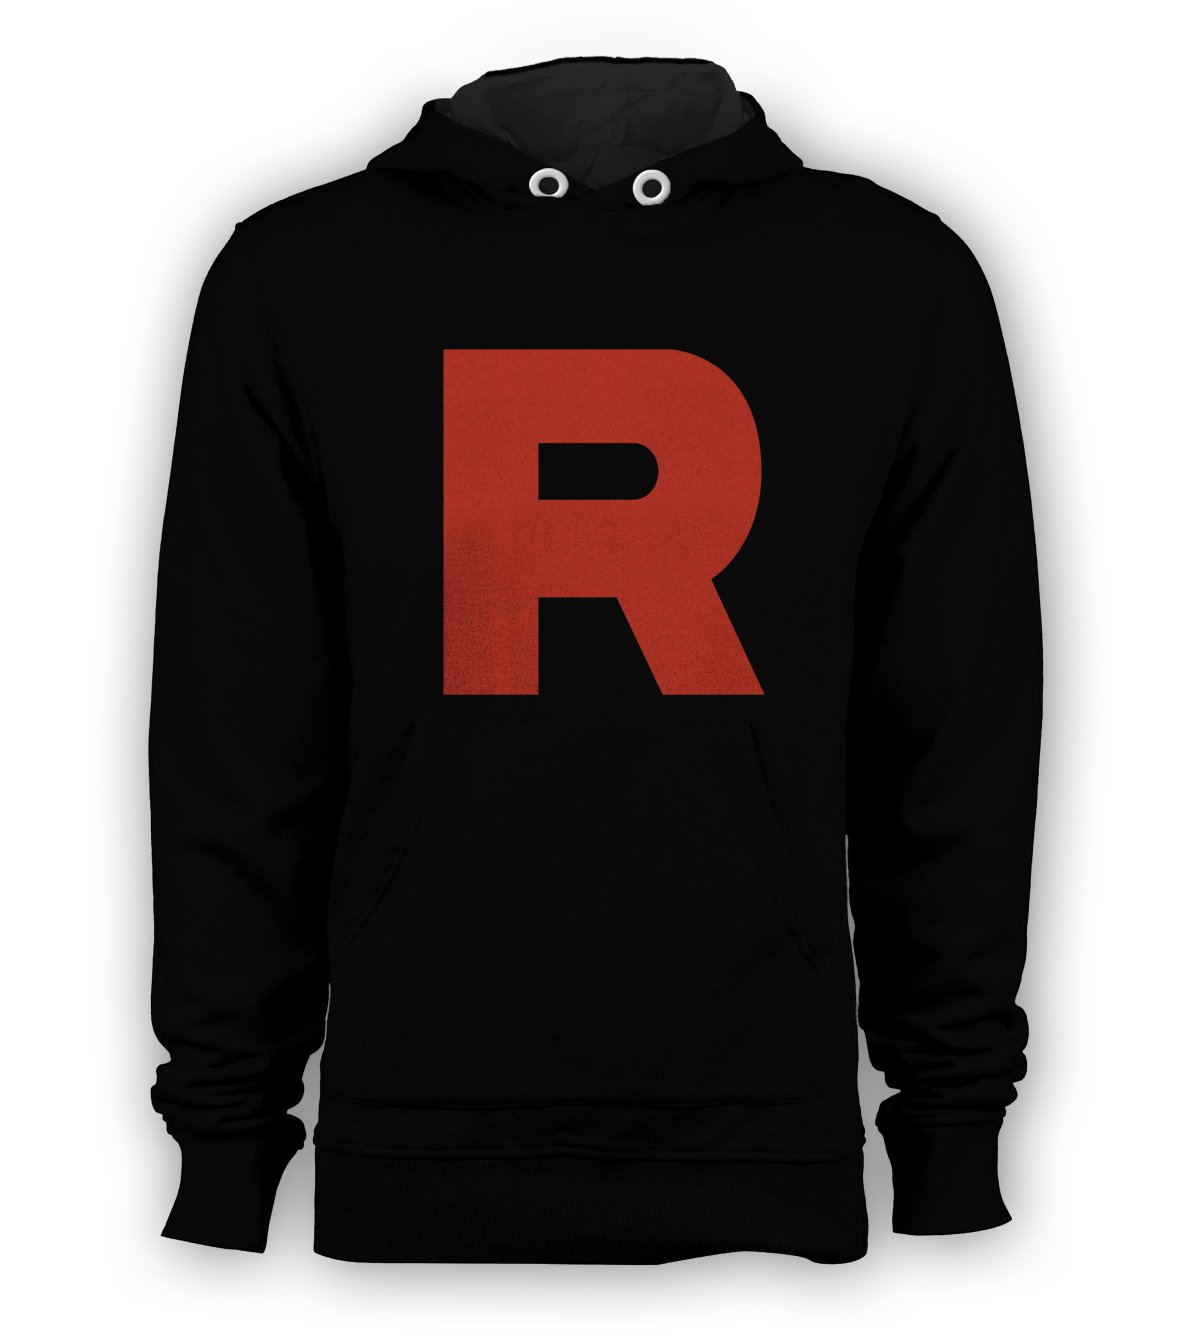 Team Rocket R Symbol Pokemon Pullover Hoodie Men Sweatshirts Size S to 3XL New Black